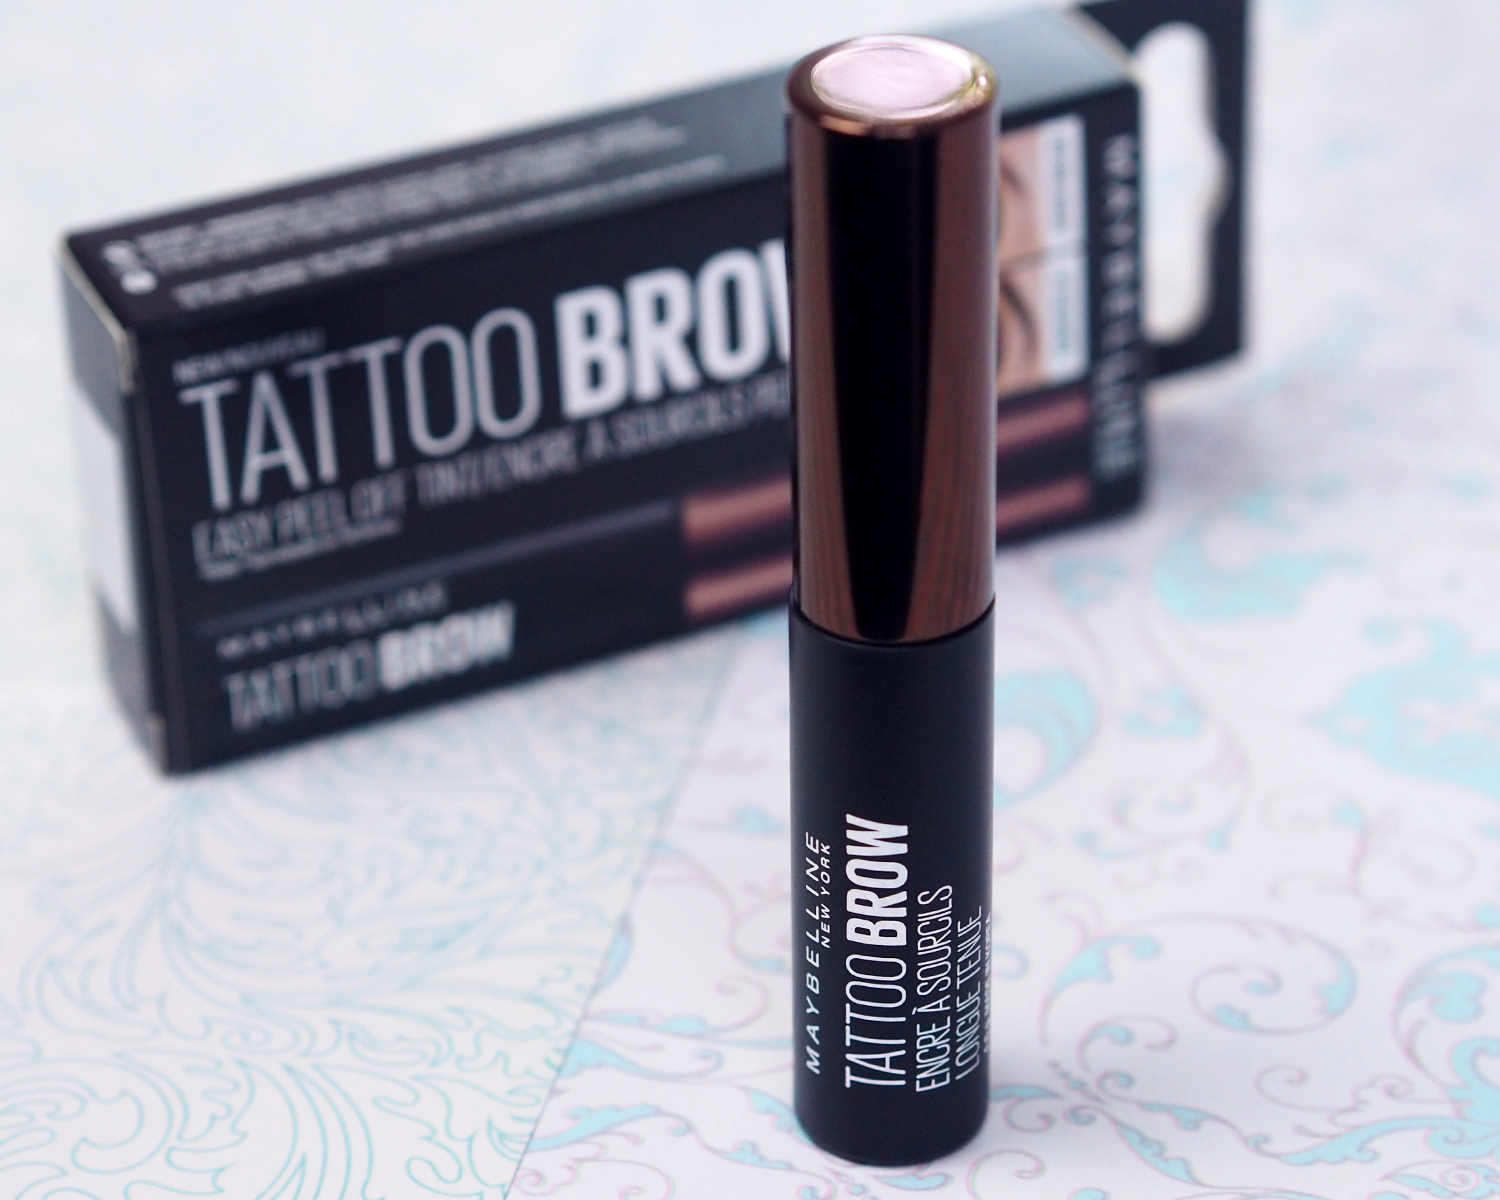 Maybelline Tattoo Brow Tint First Impressions